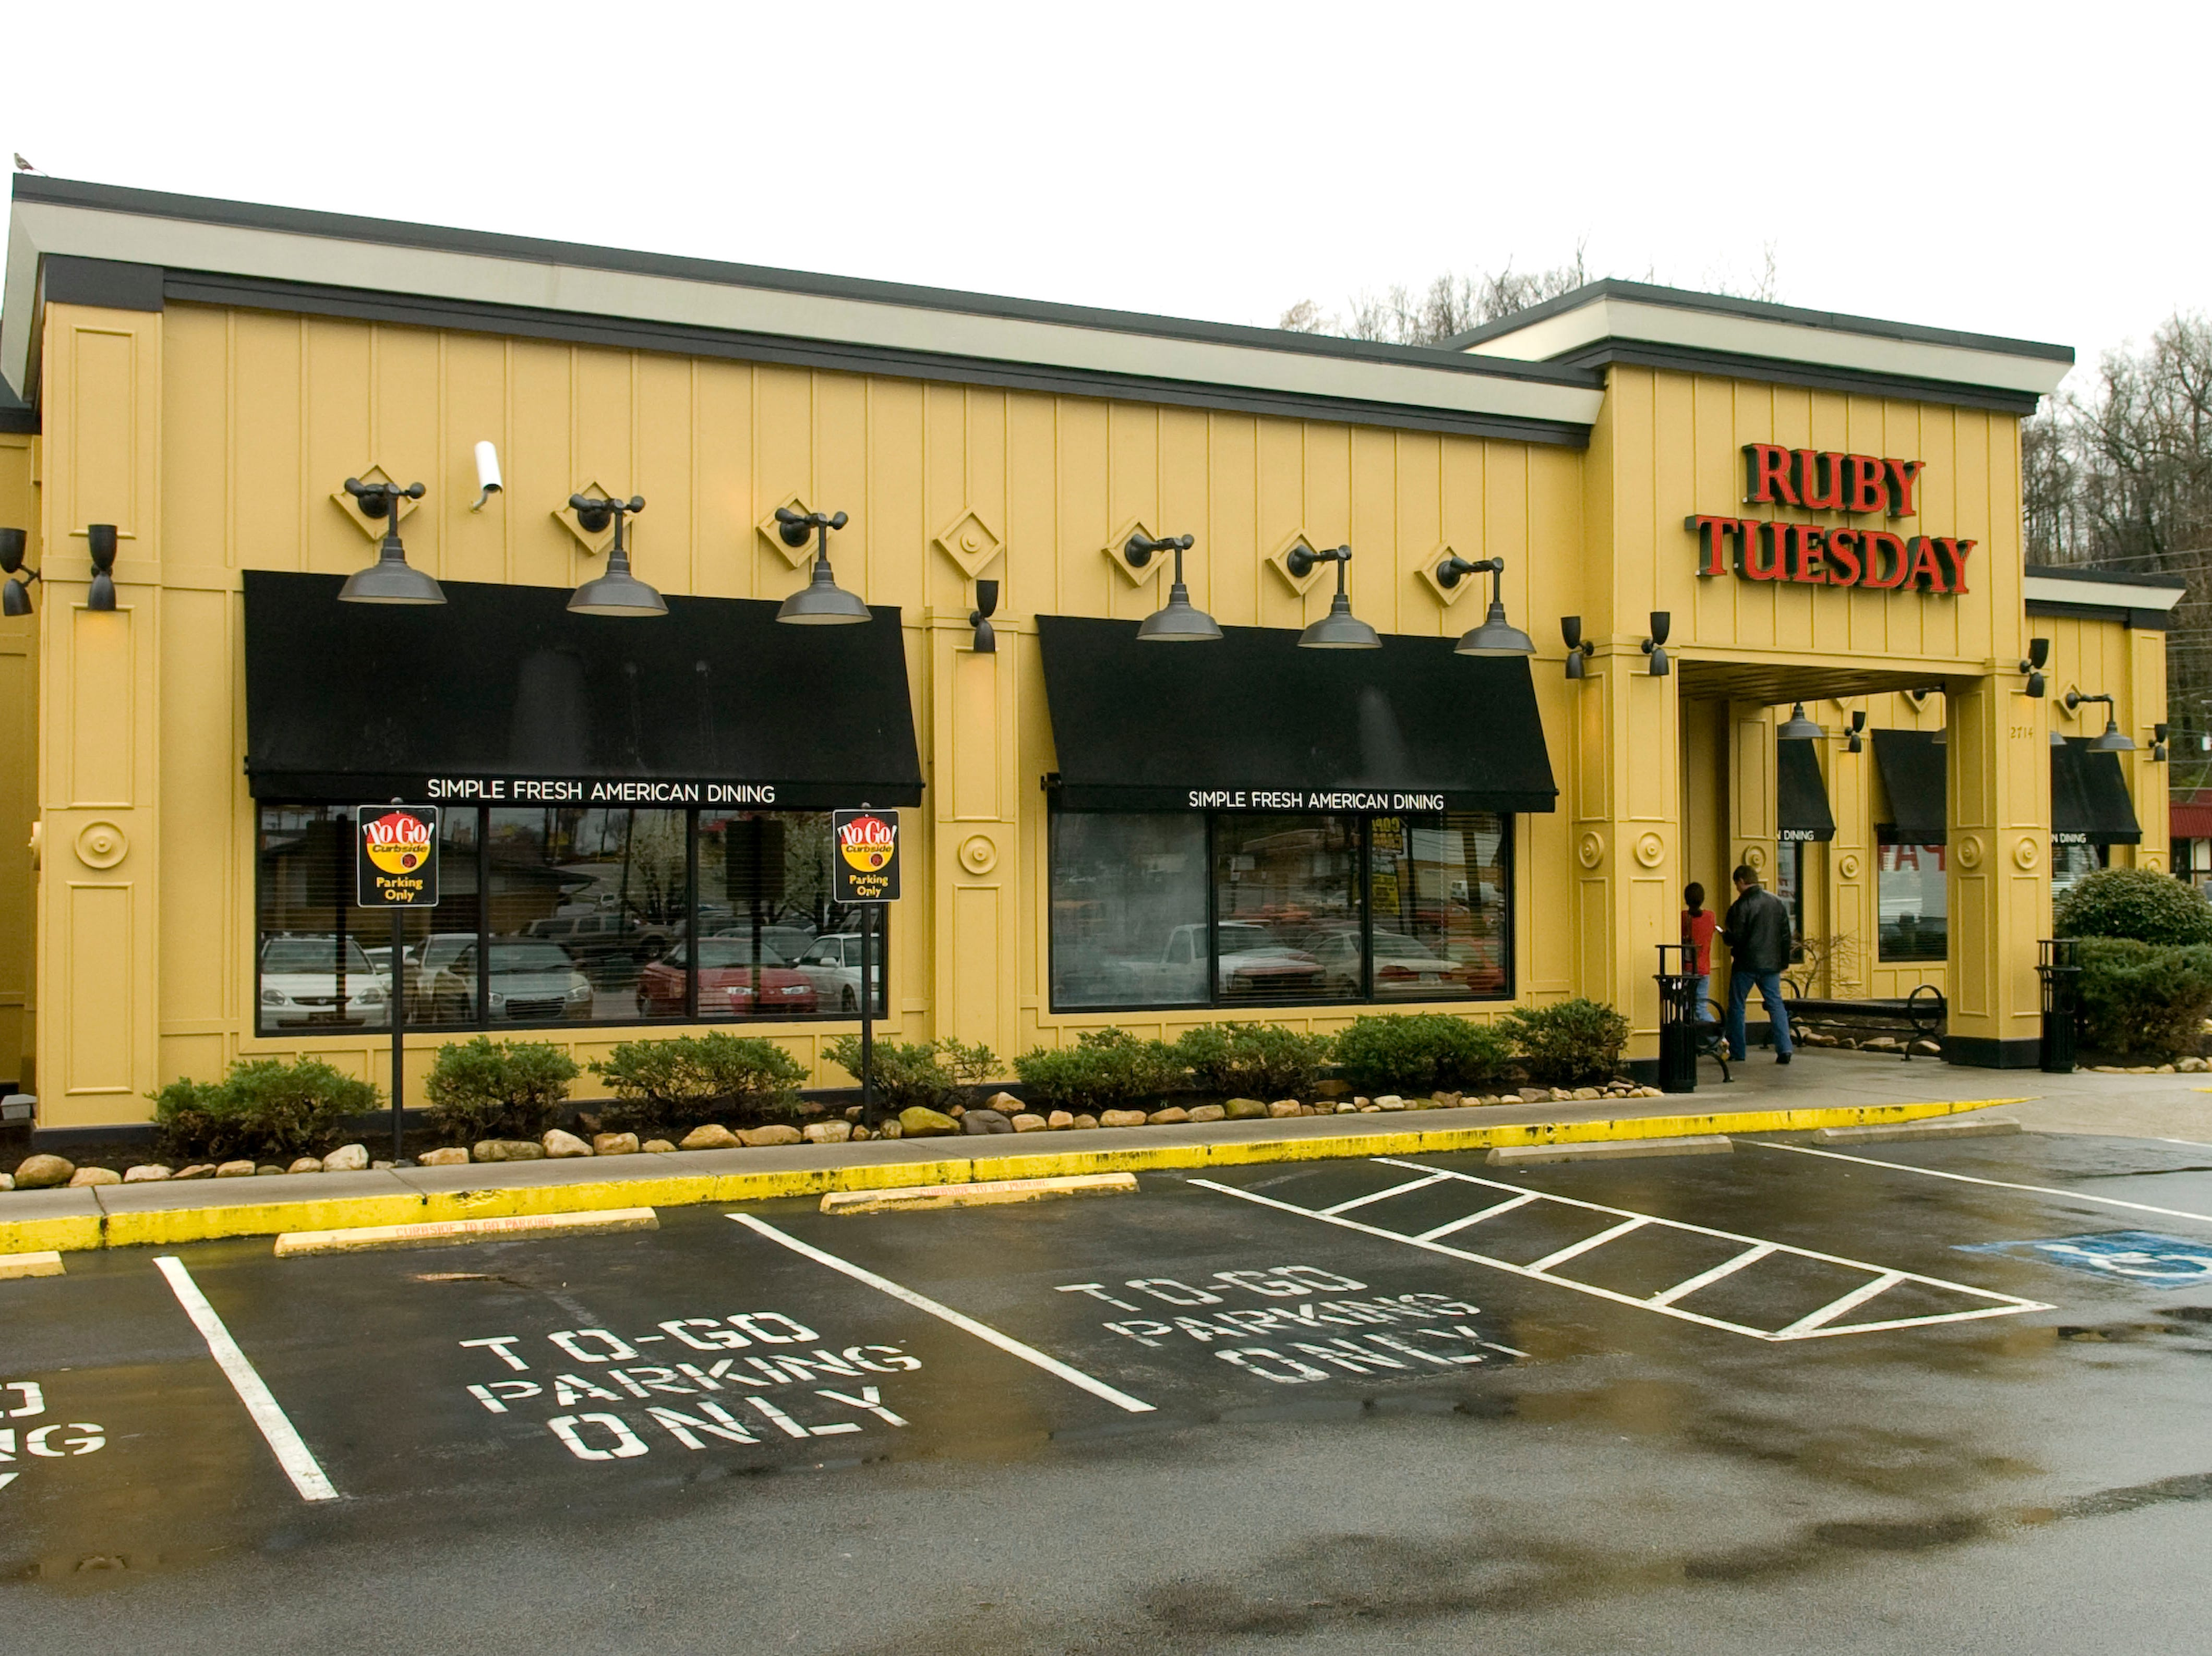 Ruby Tuesday restaurant on Chapman Highway in 2009.